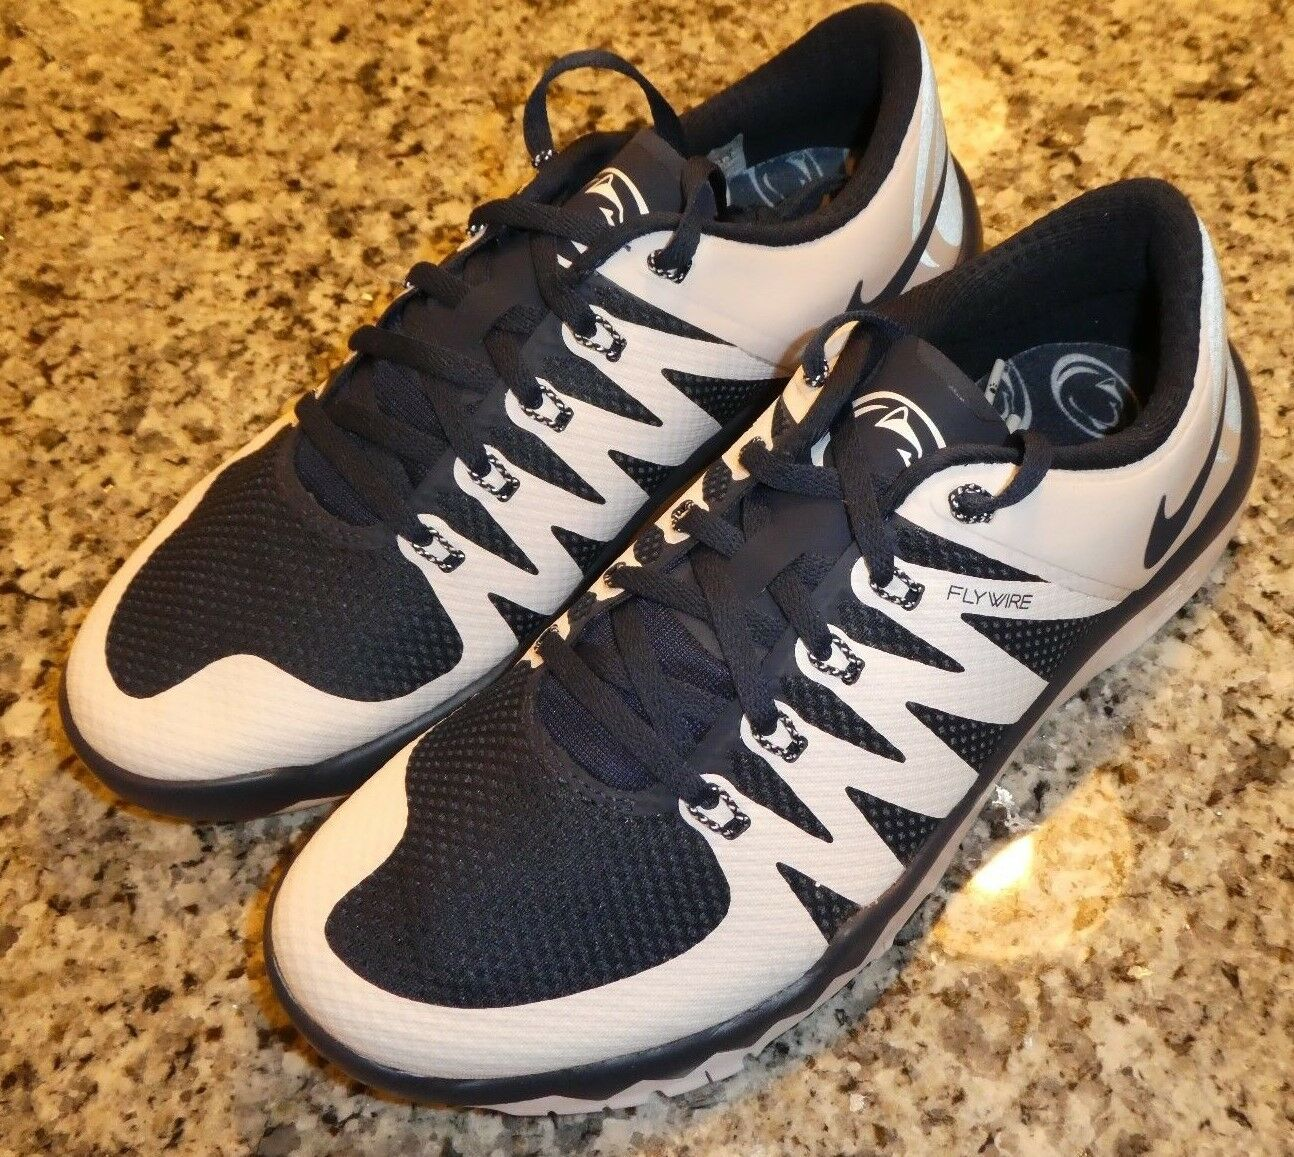 Nike Trainer Free 5.0 V6 AMP shoes Sneakers New 723939 410 size 15 Penn State